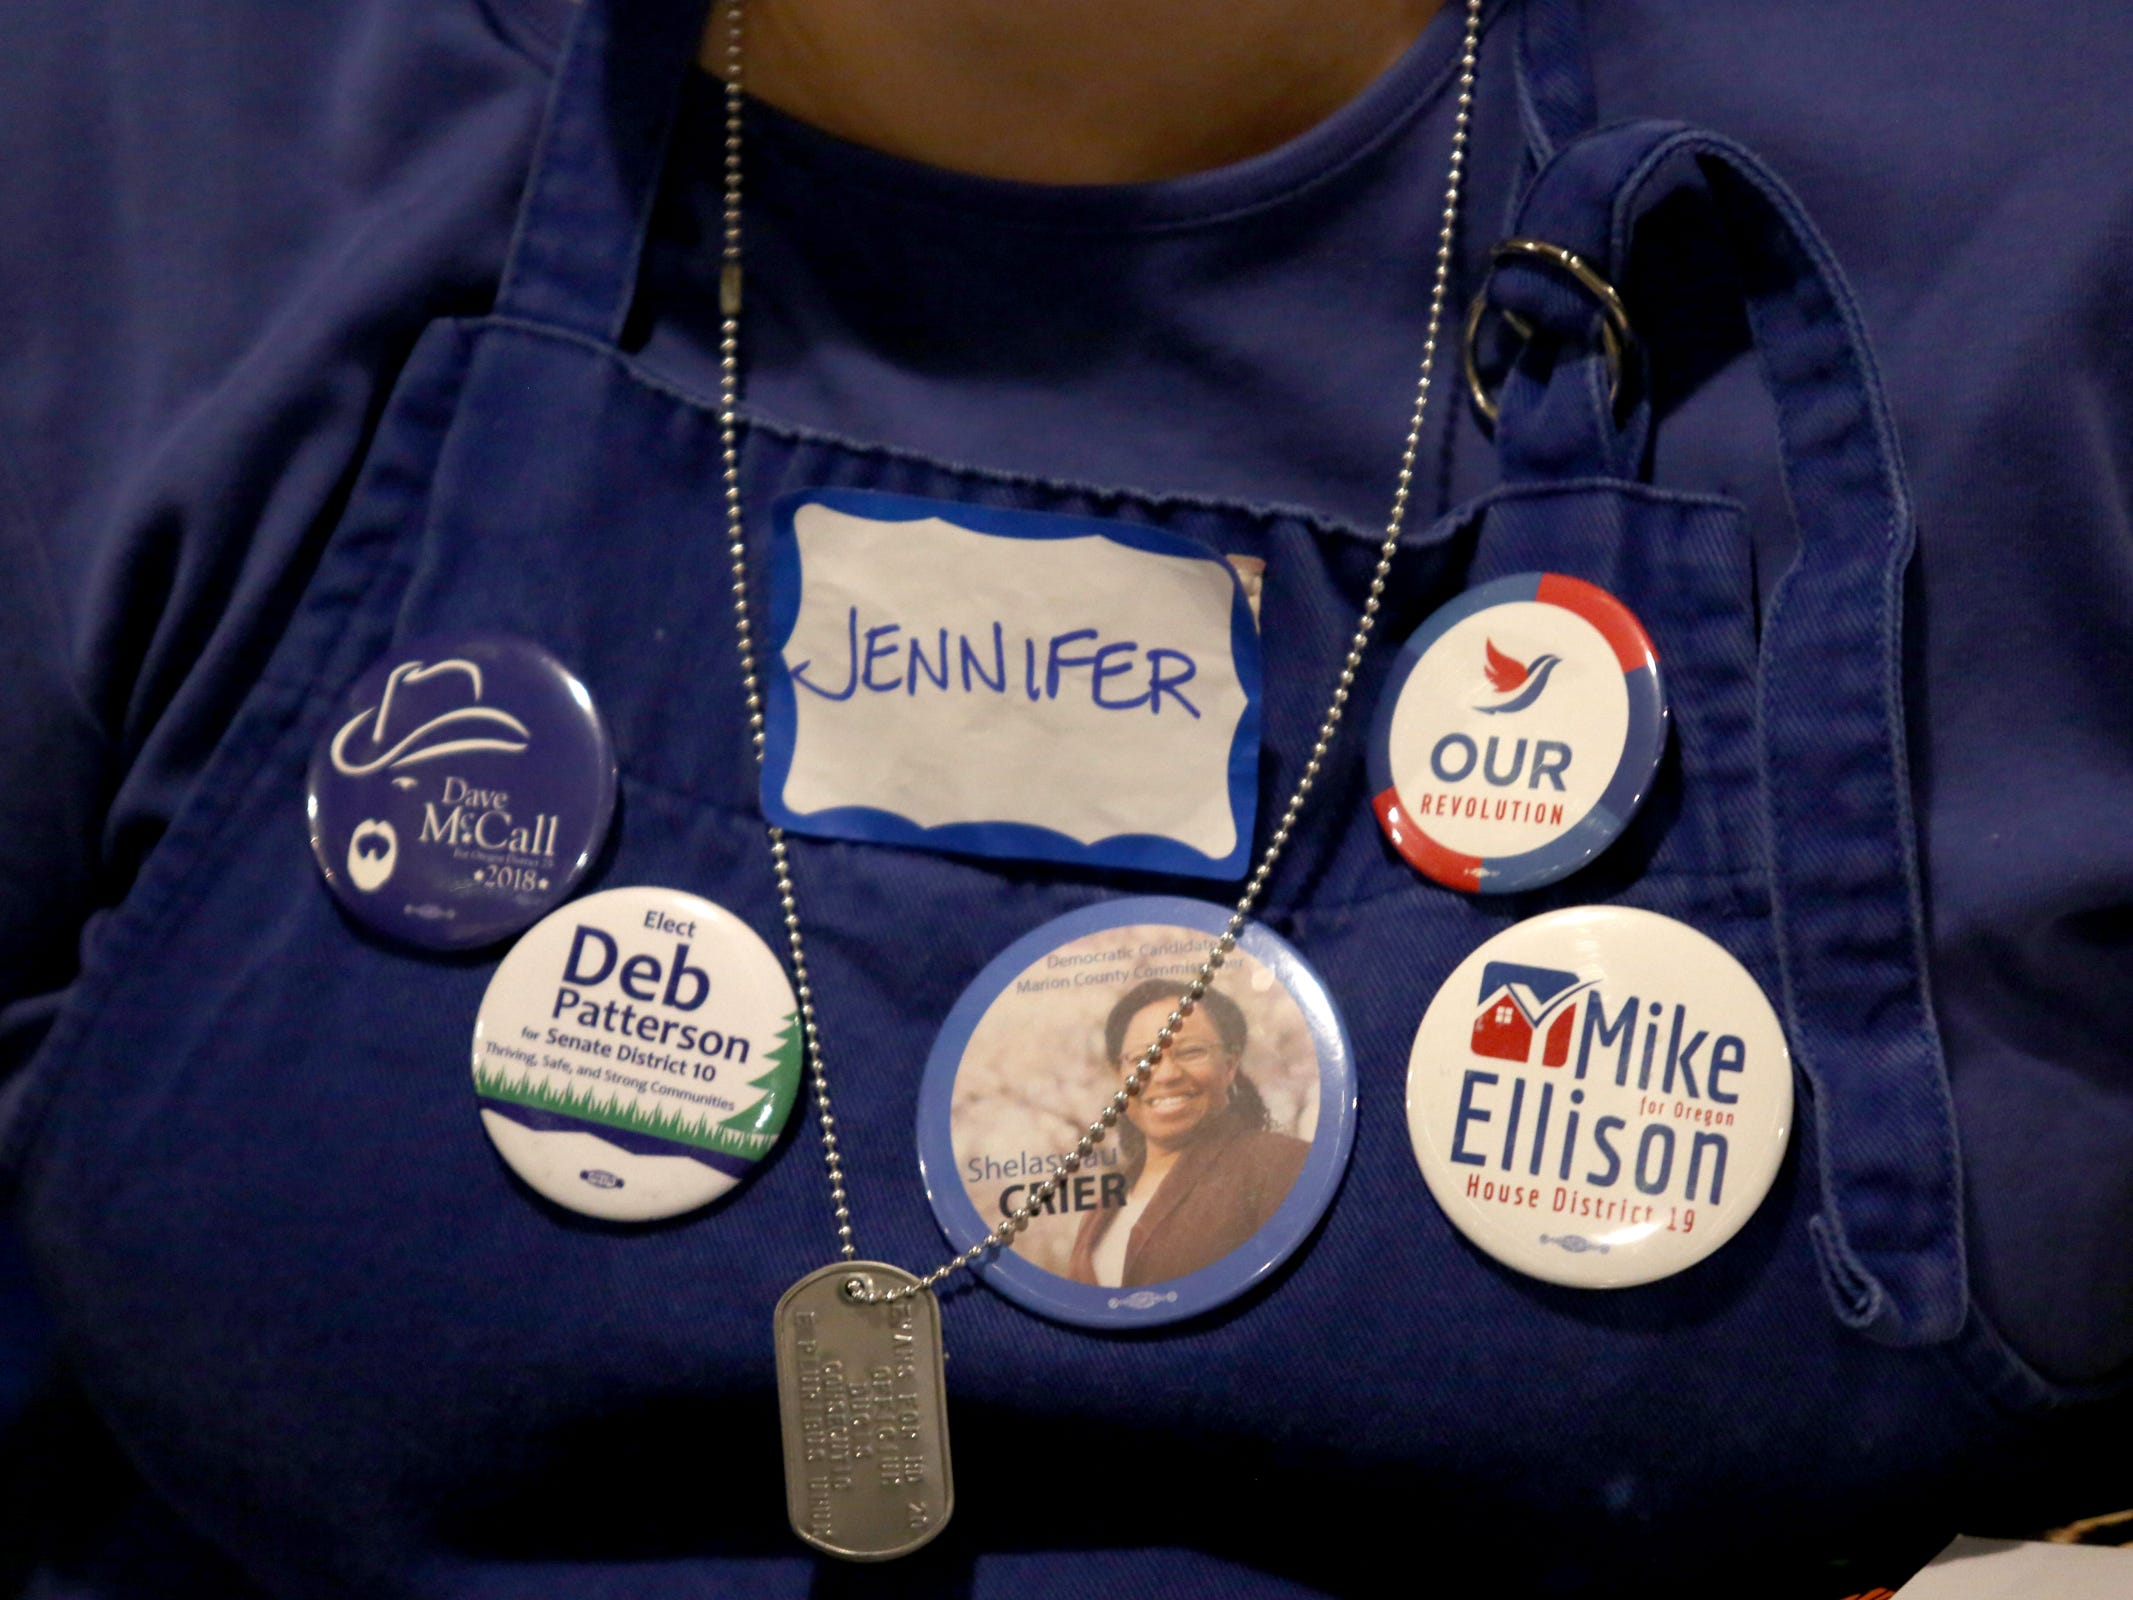 Jennifer Sprague, of Salem, wears candidate buttons during an election night party hosted by Marion County Democrats and Polk County Democrats at the Willamette Heritage Center in Salem on Tuesday, Nov. 6, 2018.